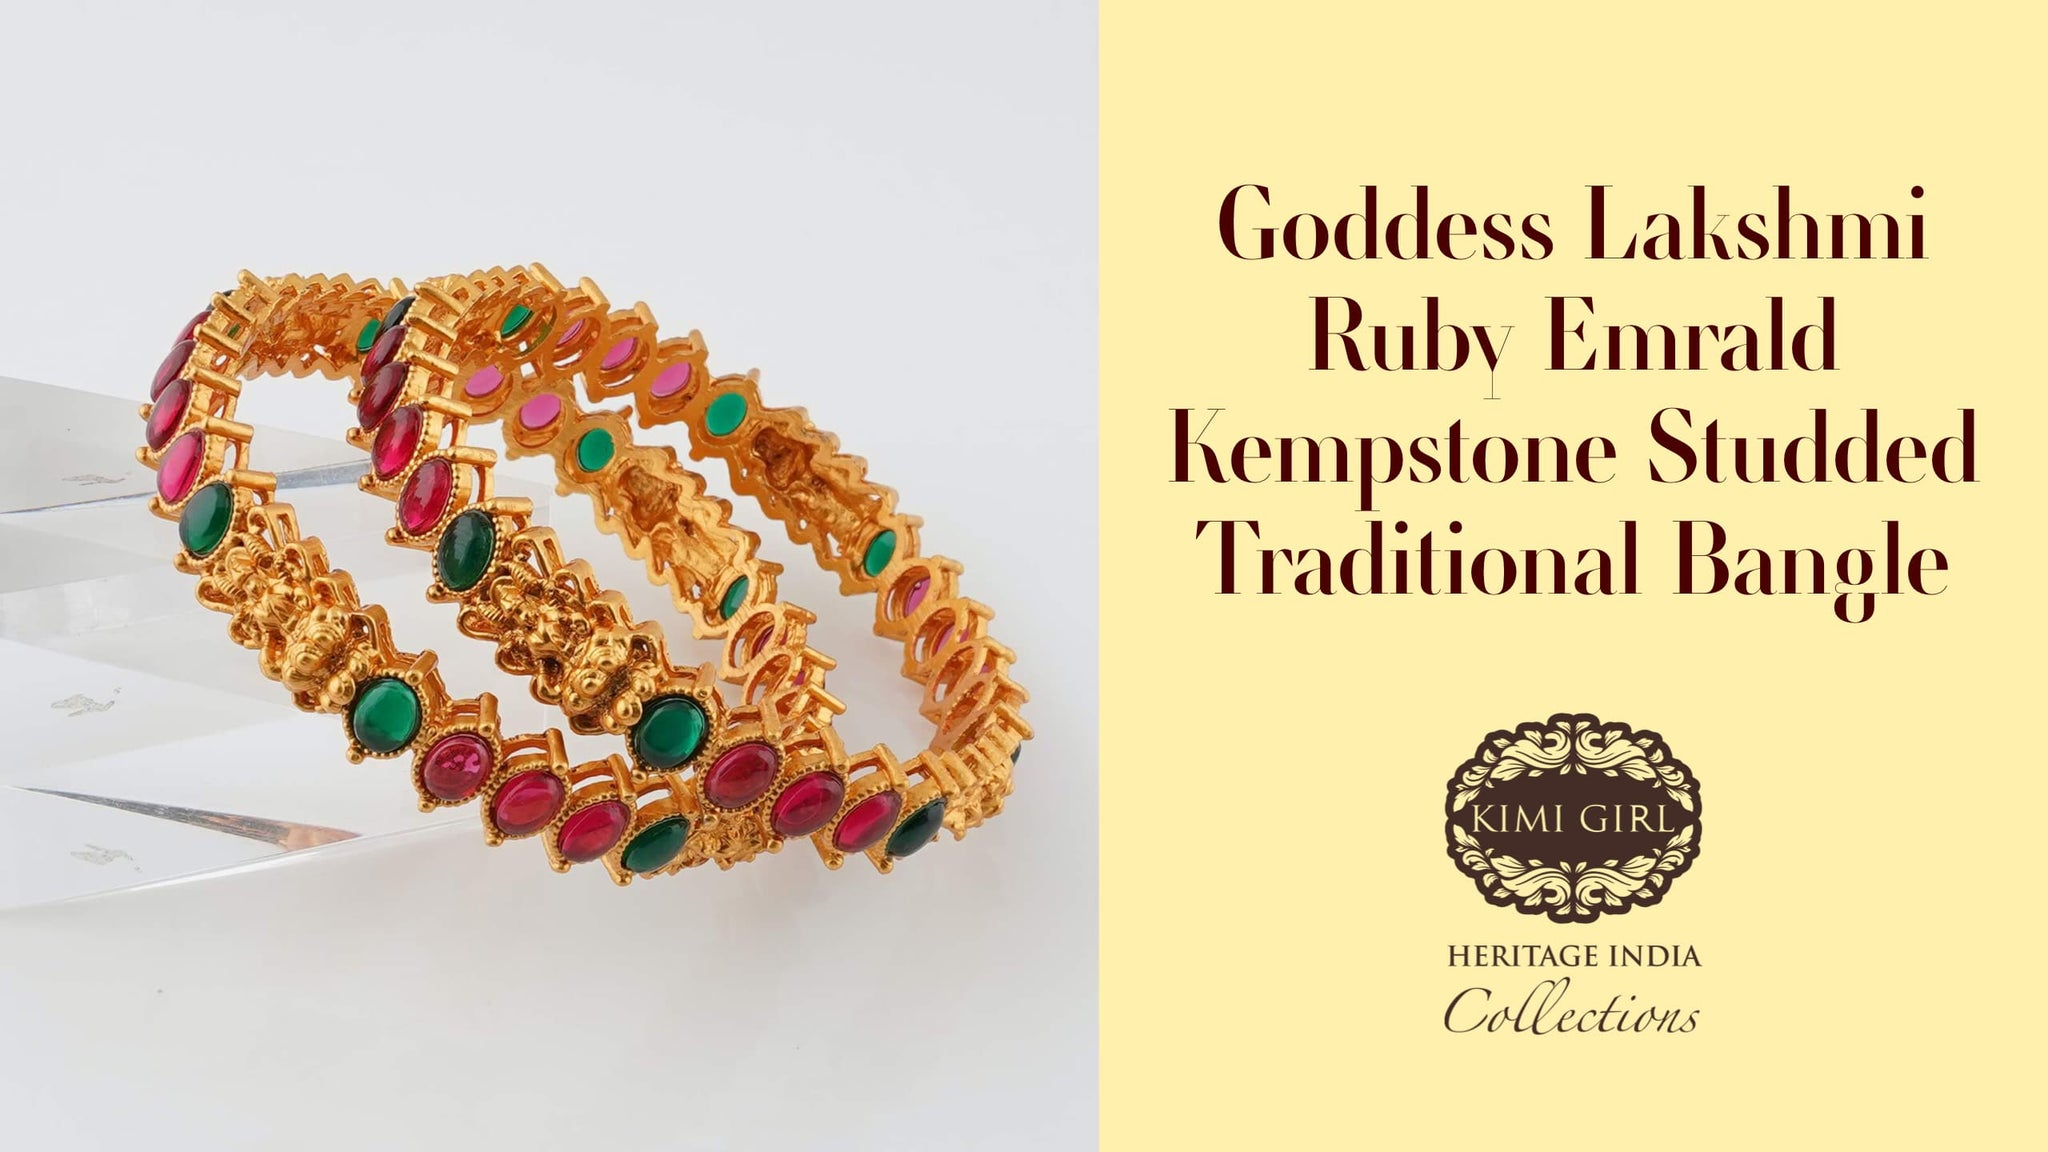 5 Unique Bangle Designs From Kimi Girl To Complete Your Goddess Look by The Nesavu salem, Coimbatore, Erode